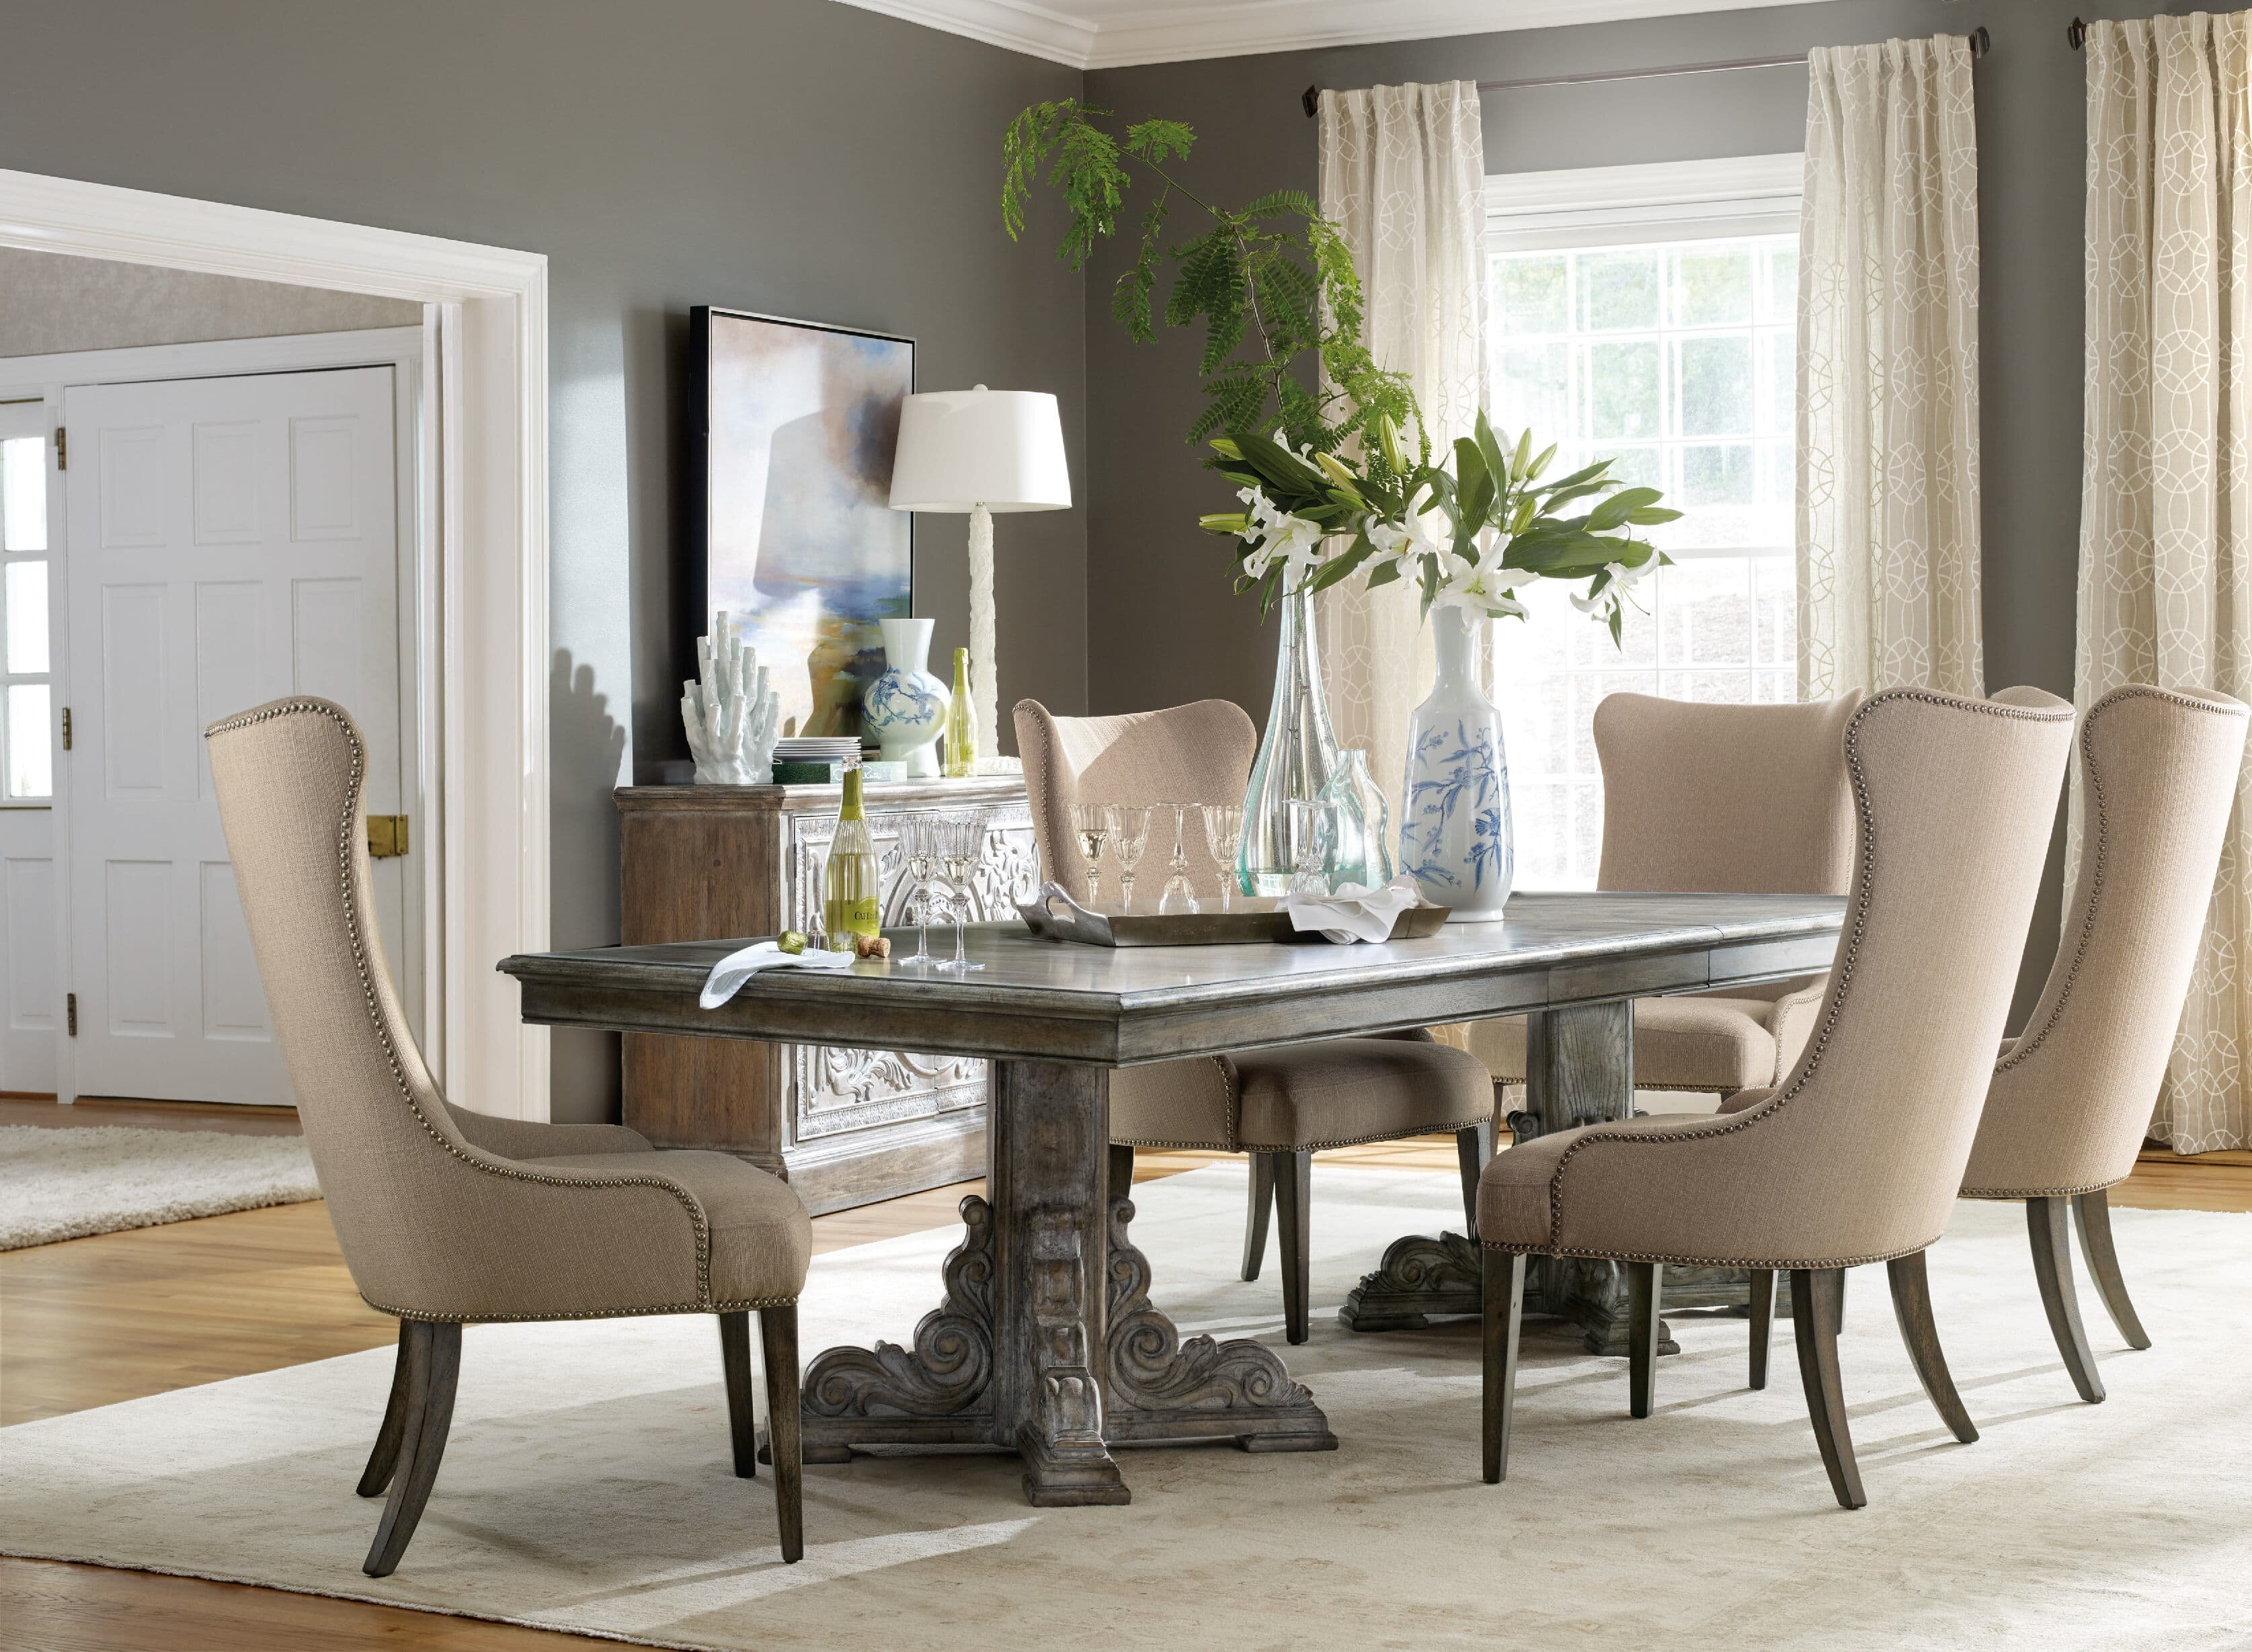 Hooker furniture true vintage 3 piece extendable dining table set reviews wayfair